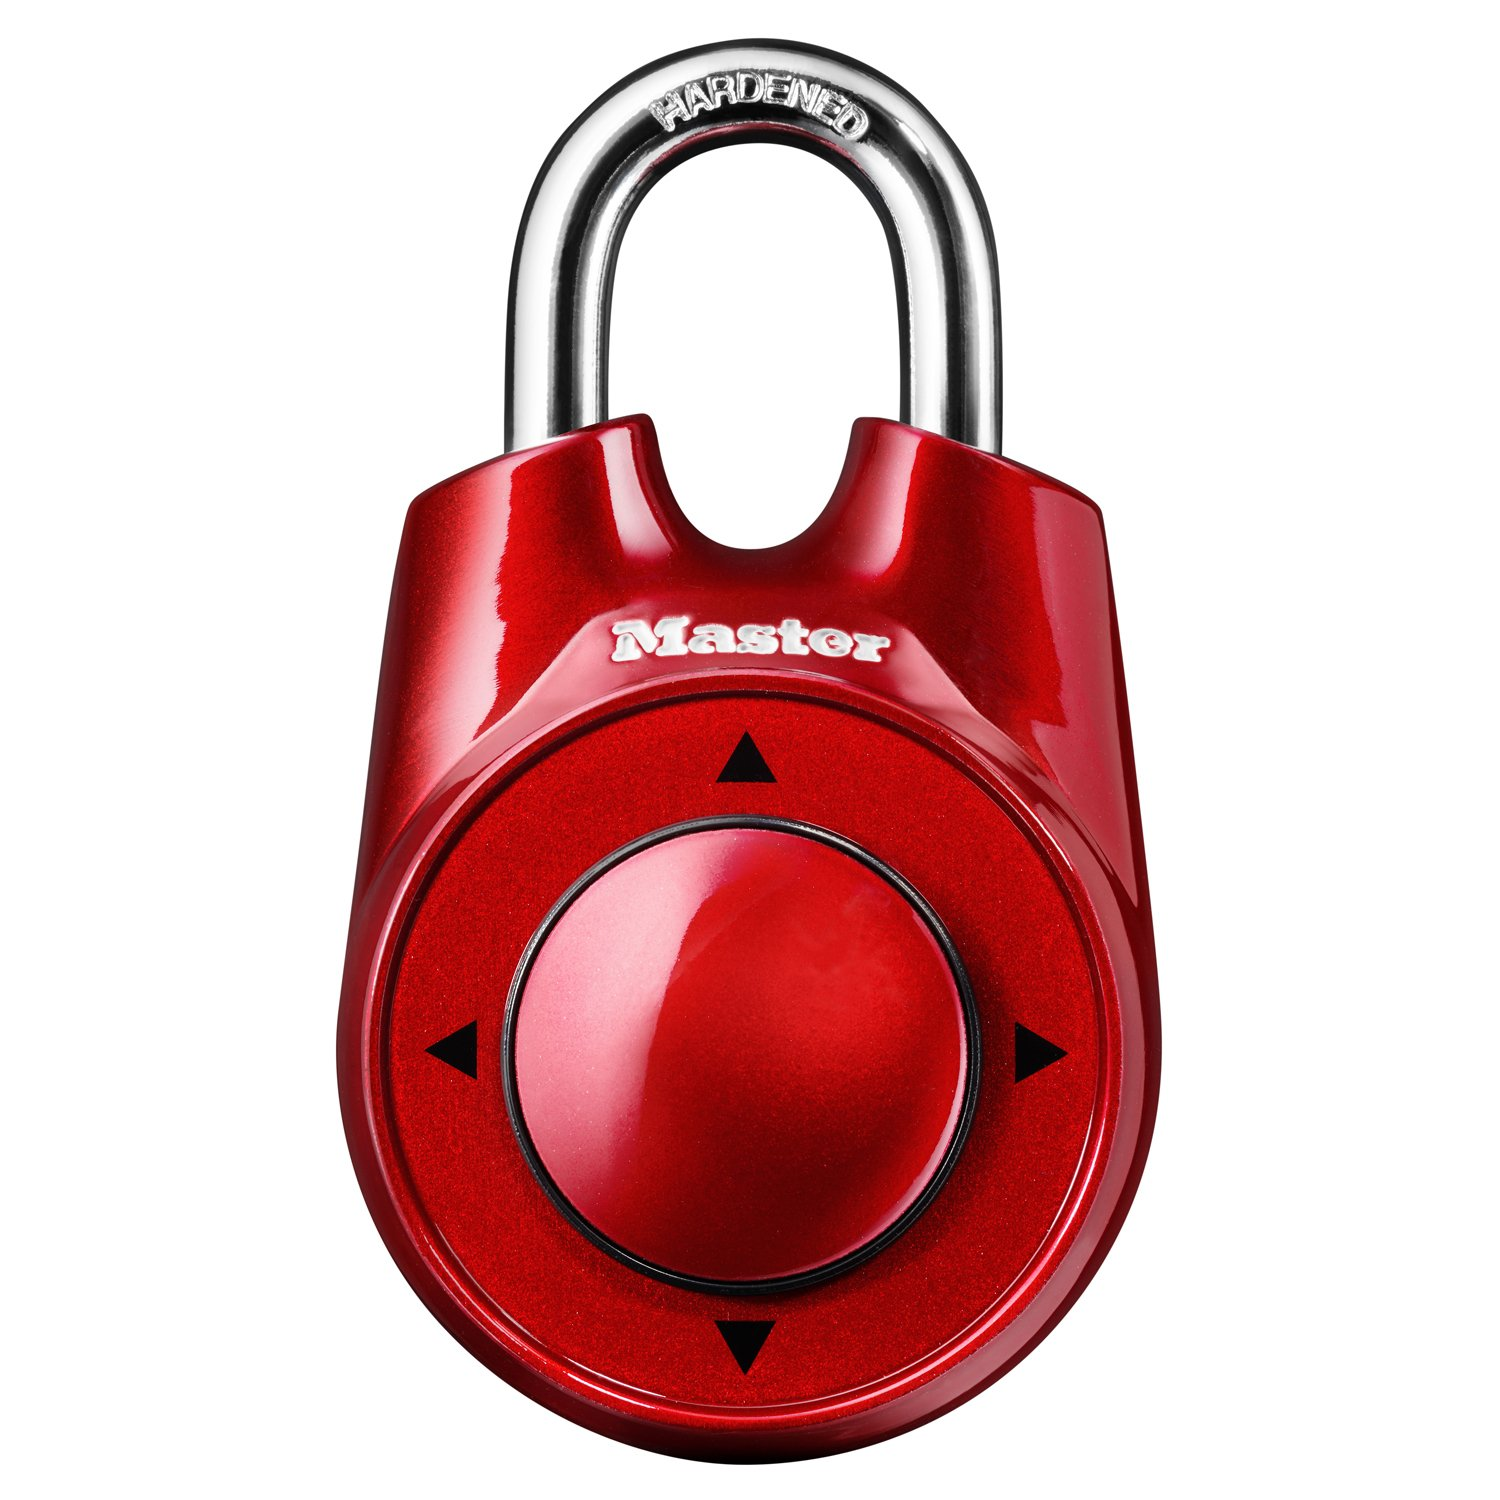 Master Lock 1500iD Set Your Own Directional Combination Padlock, 2-1/8 in. Wide with 1 in. Shackle, Assorted Colors